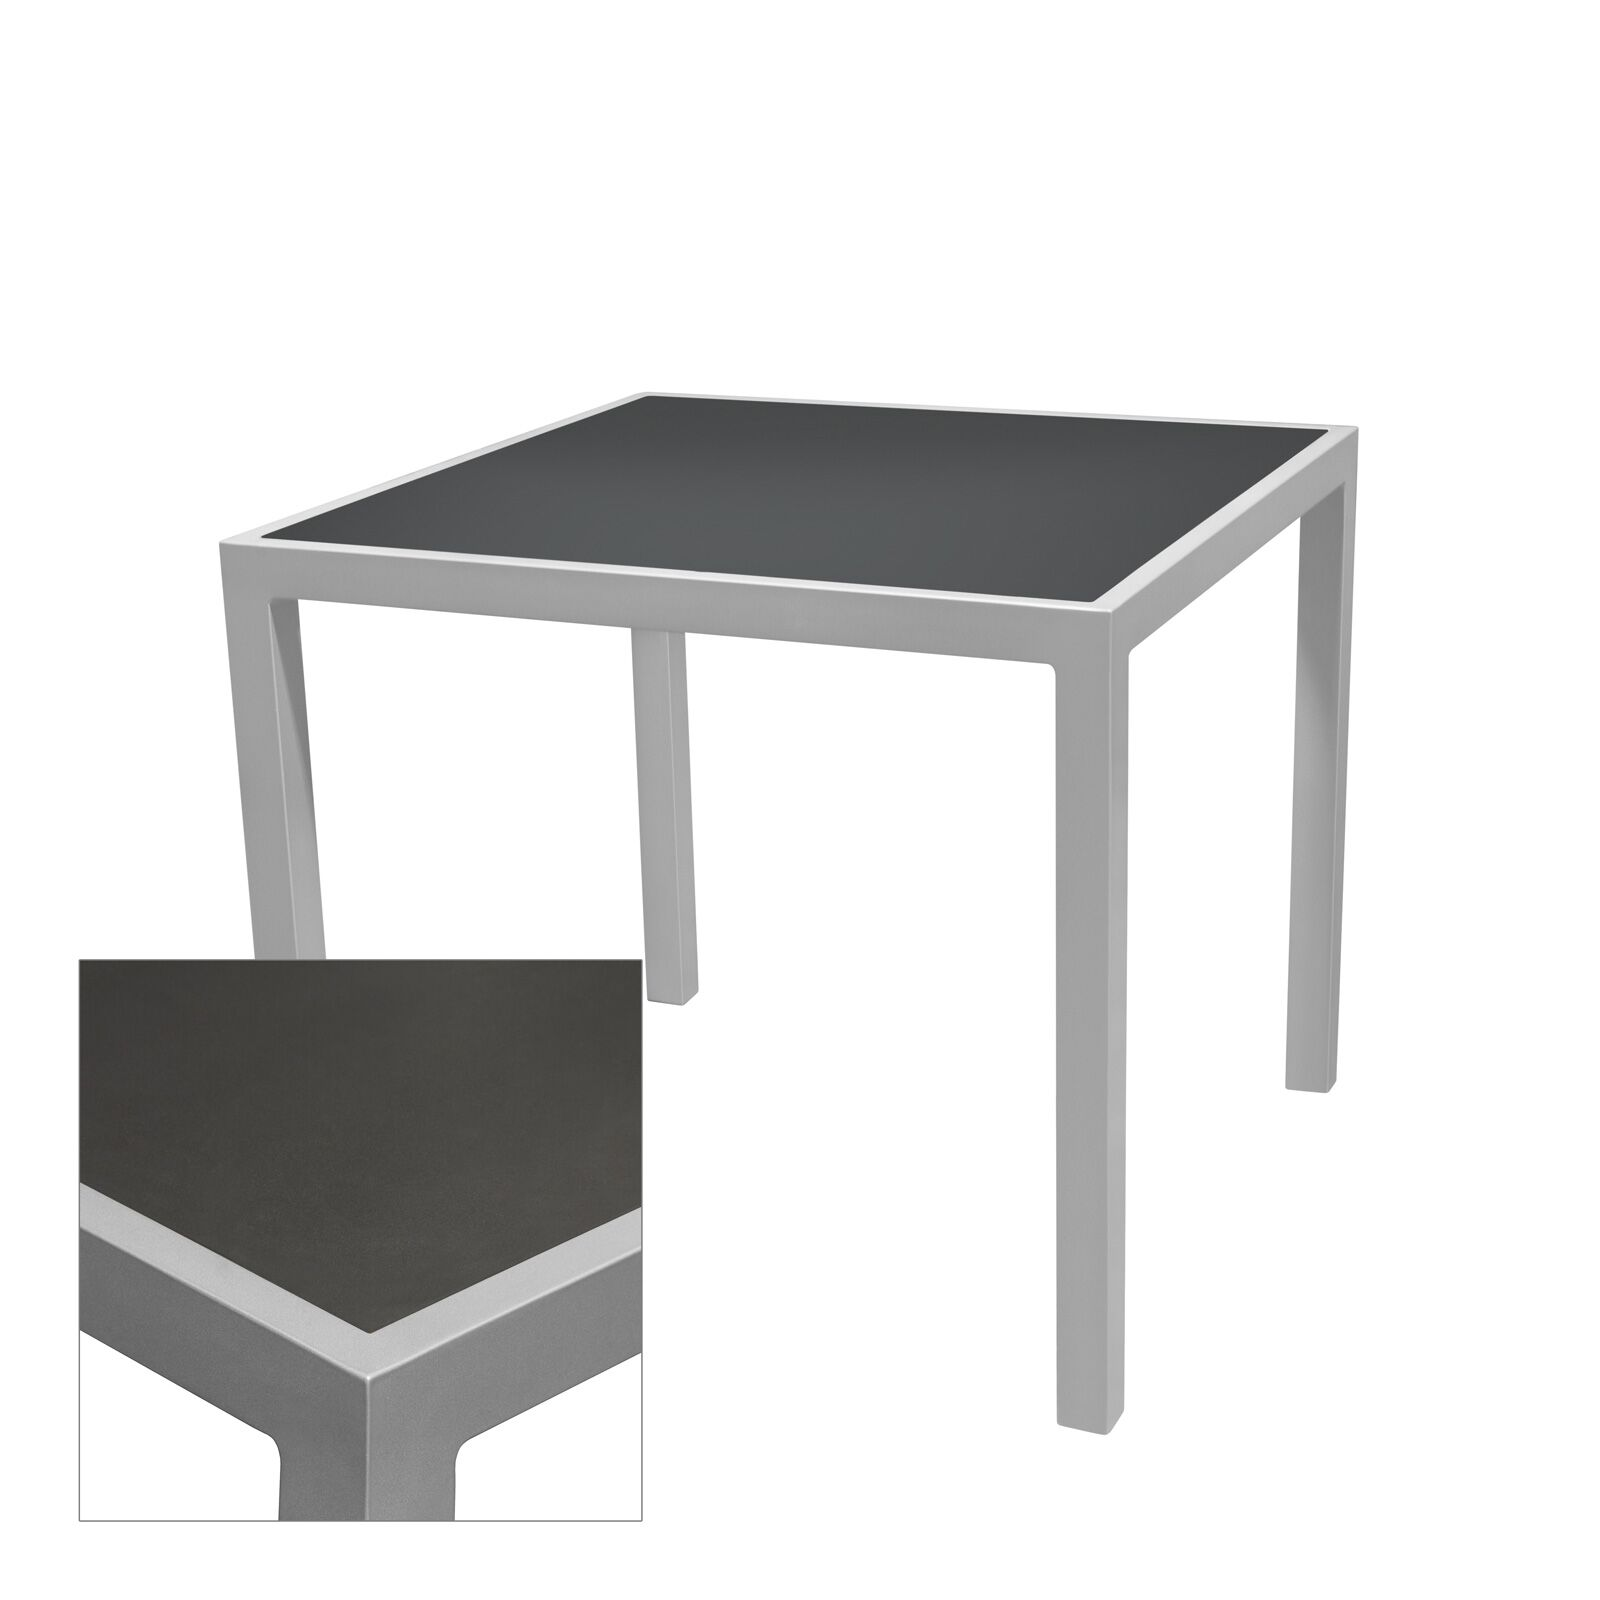 Corsa Bar Table Table Size: 24